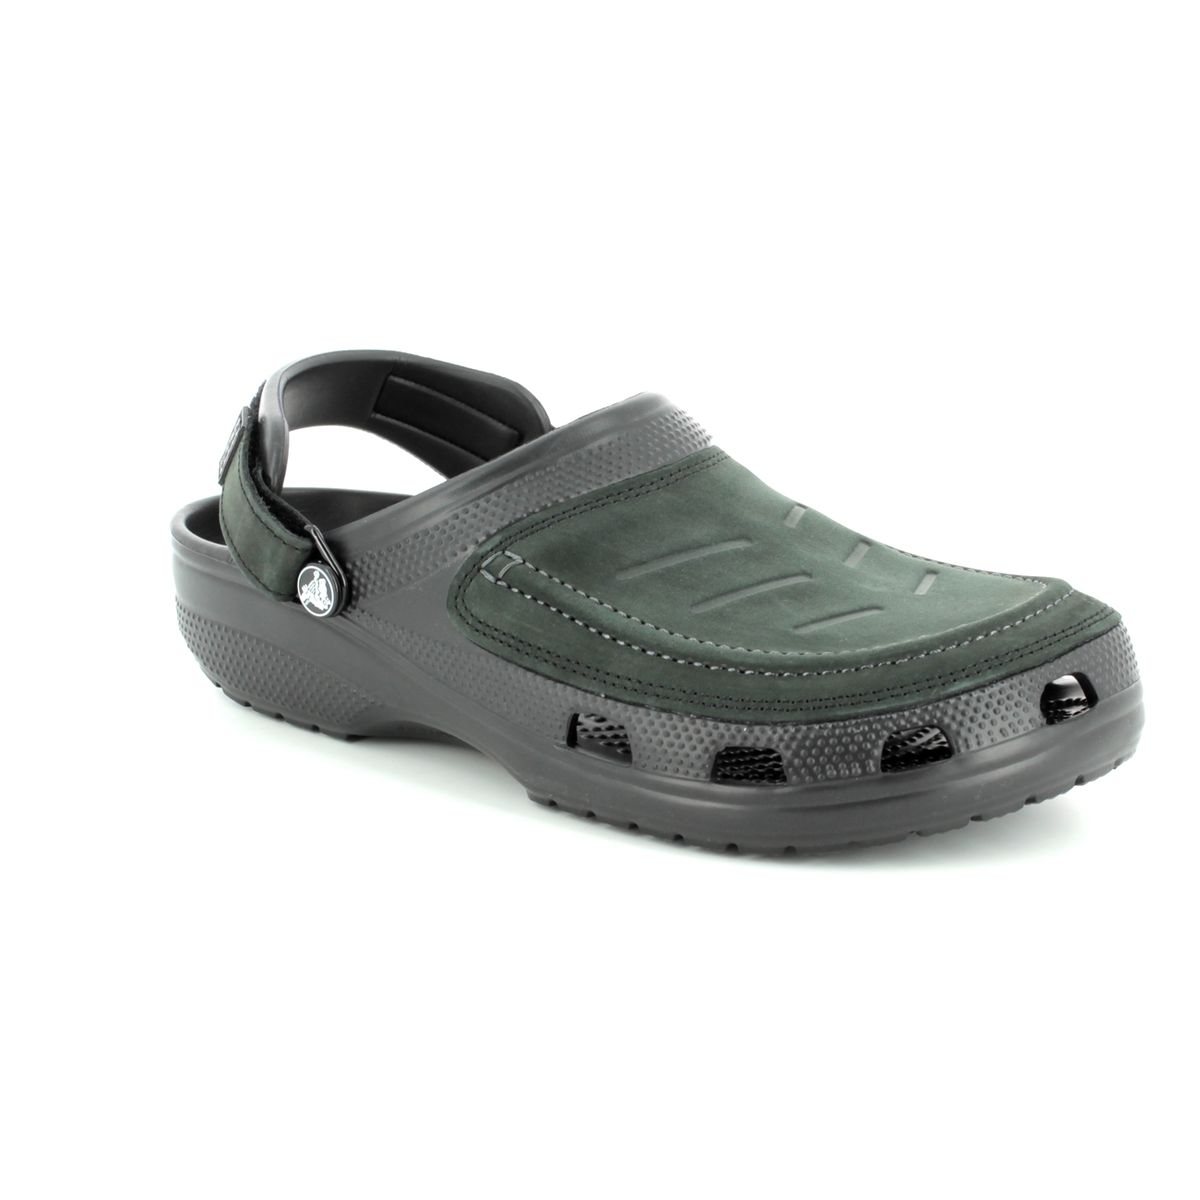 2f3882c7daf700 Crocs Sandals - Black - 205177 060 YUKON VISTA